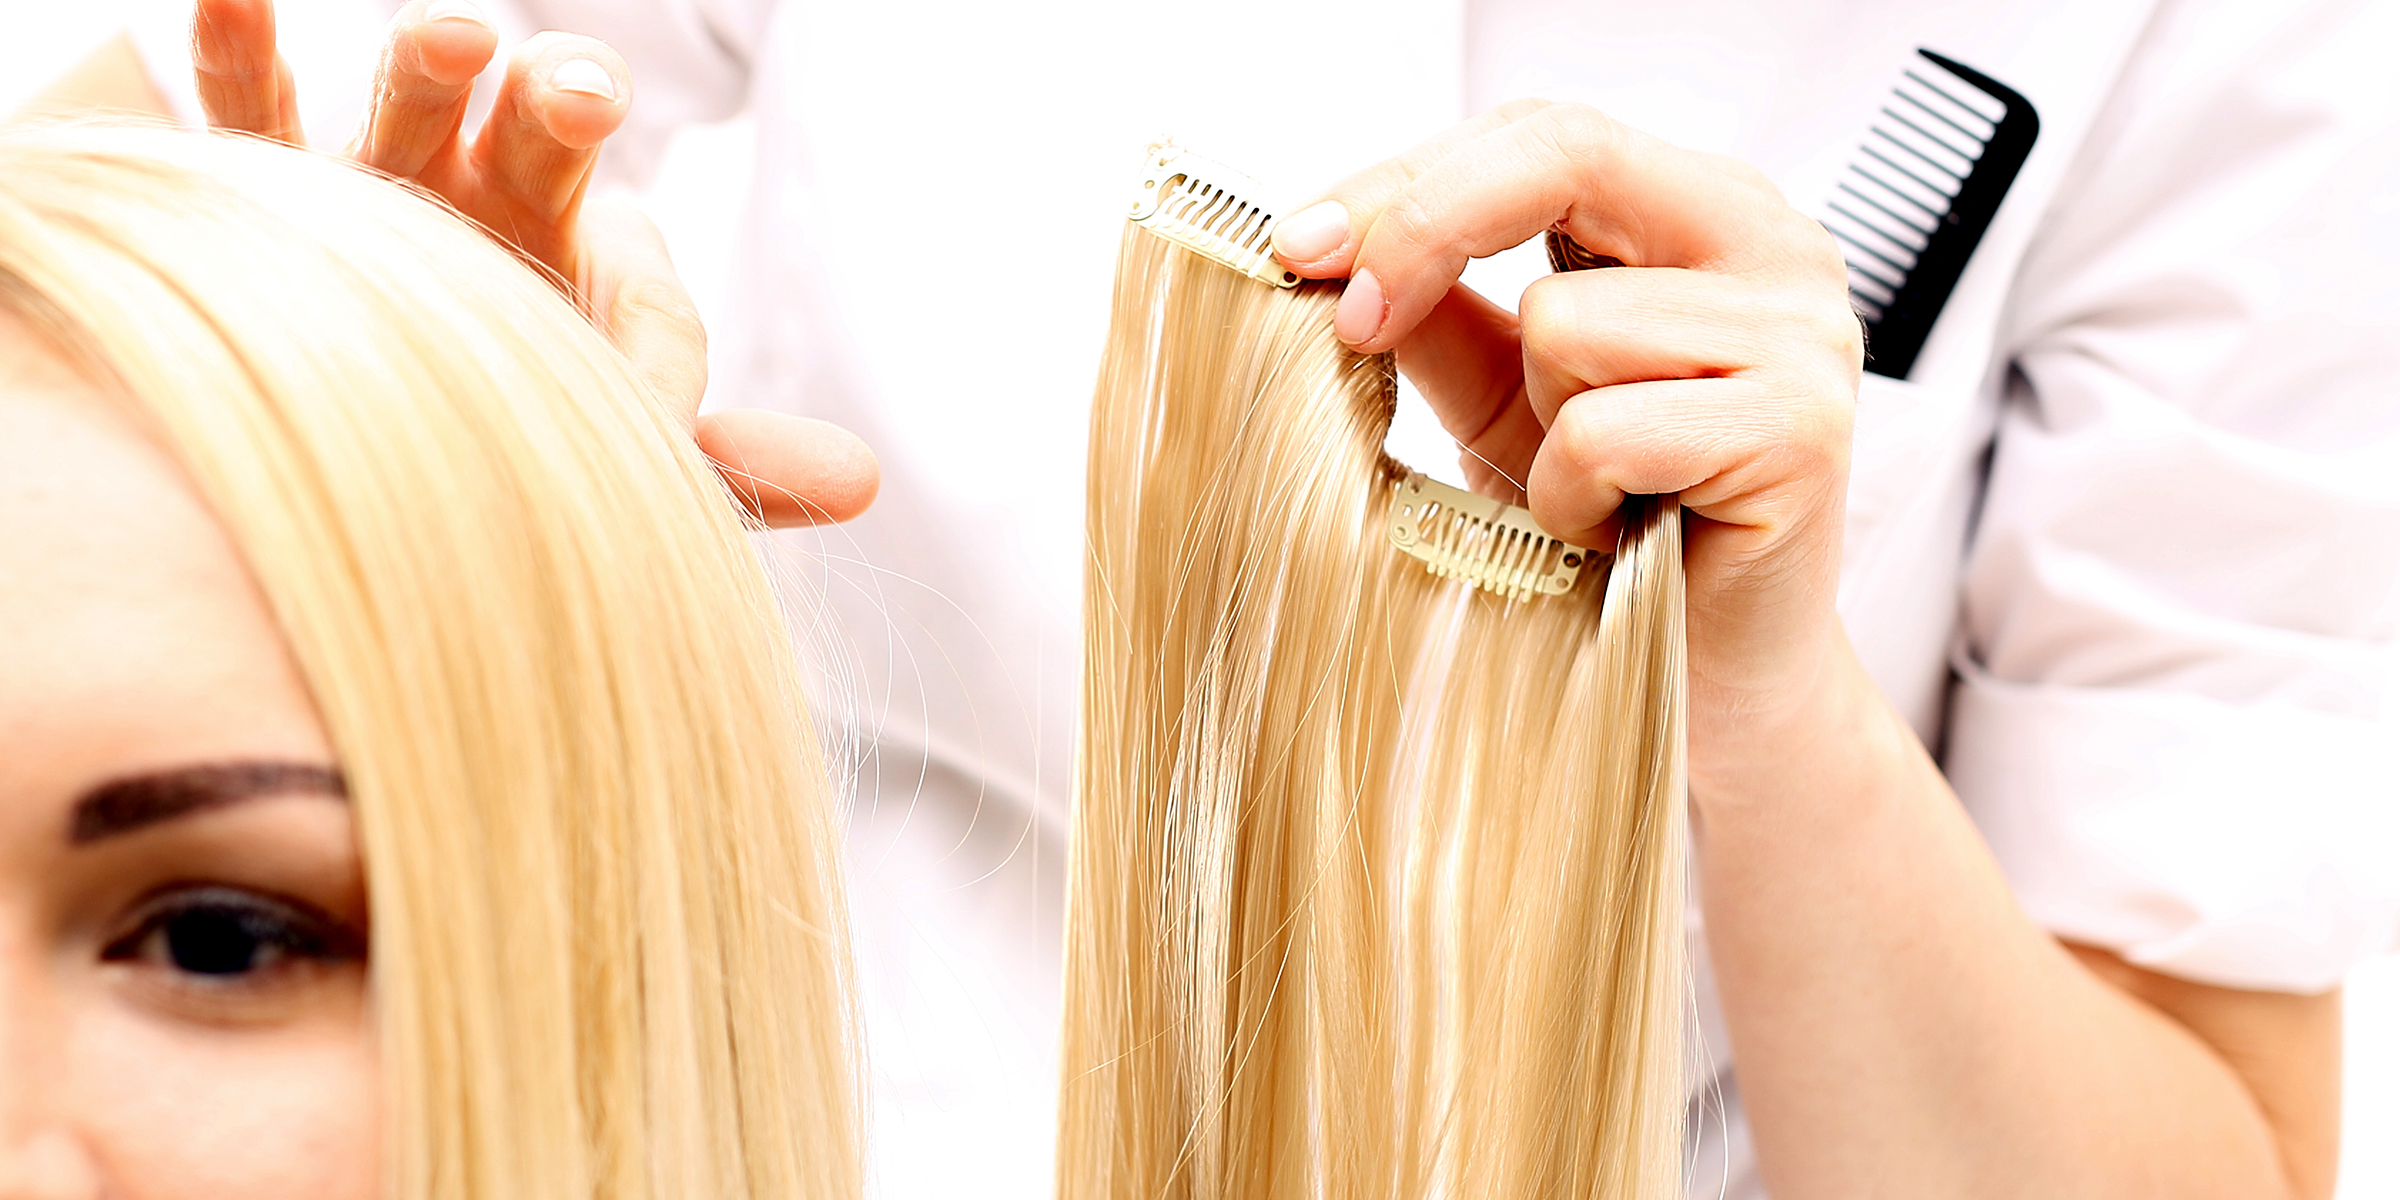 10 Best Clip In Hair Extensions According To Celebrity Hairstylists